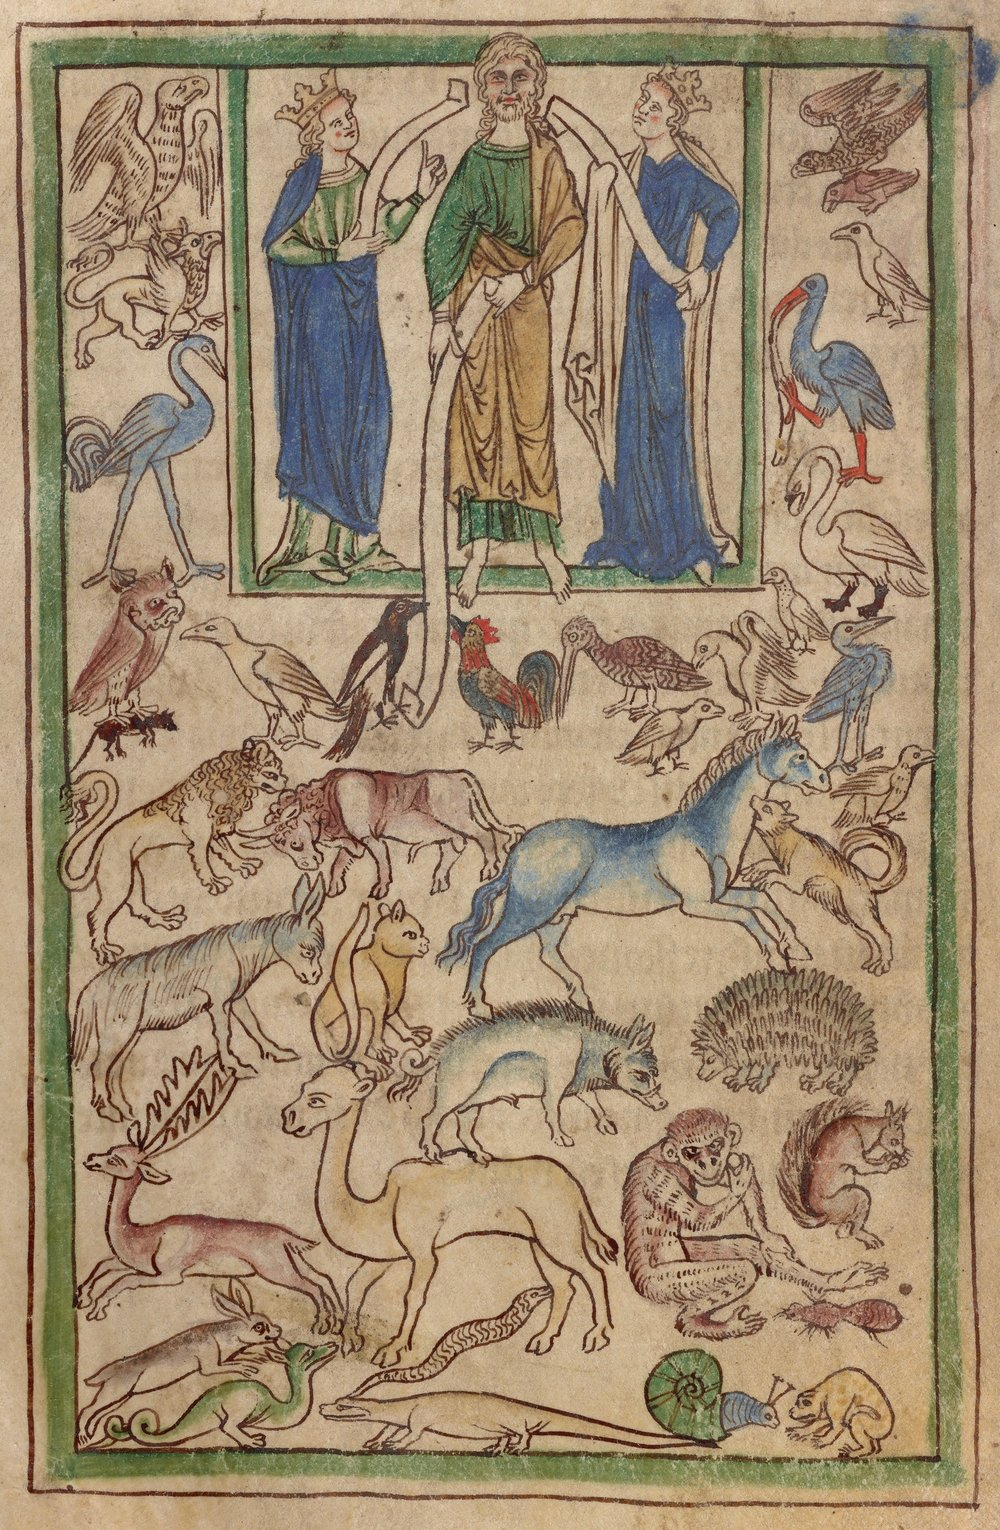 Adão nomeando os animais , Bestiário Northumberland  (Inglaterra, c. 1250-60), ms. 100, fol. 5v. The J. Paul Getty Museum, Los Angeles